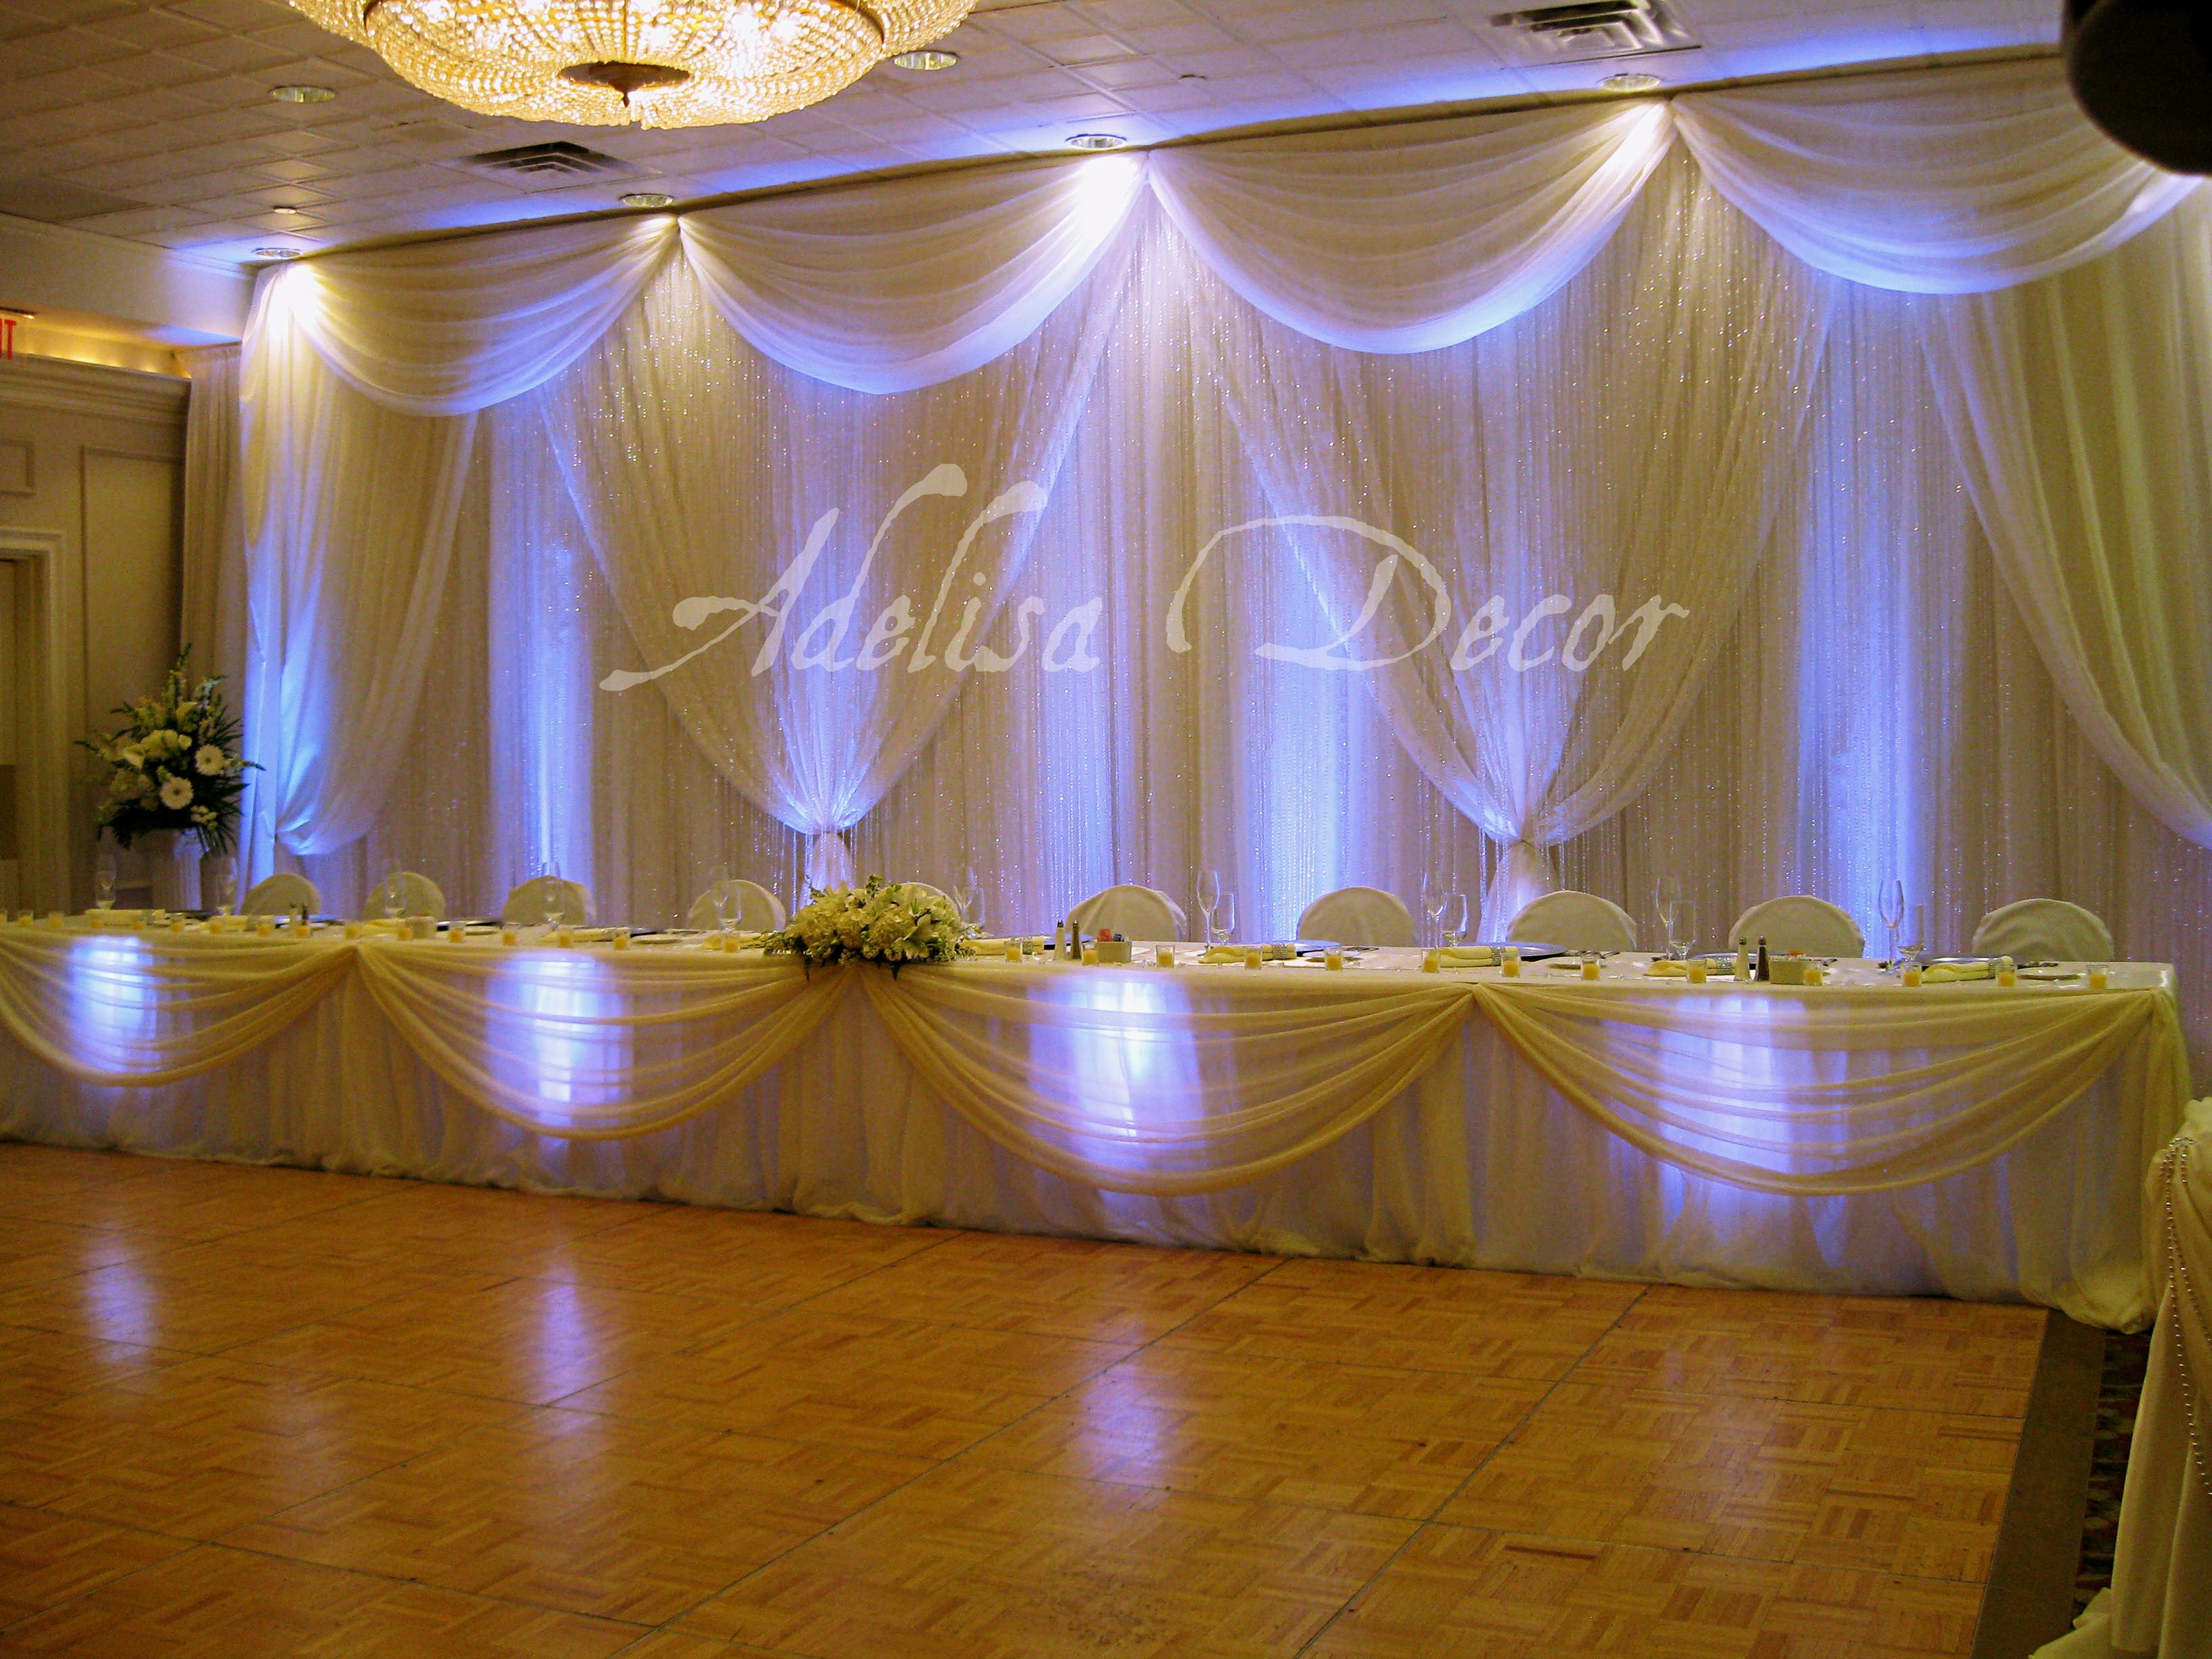 Uncategorized Wedding Reception Backdrop Decorations dreamy ivory sheer wedding reception backdrop head table decor lighting by adelisa decor